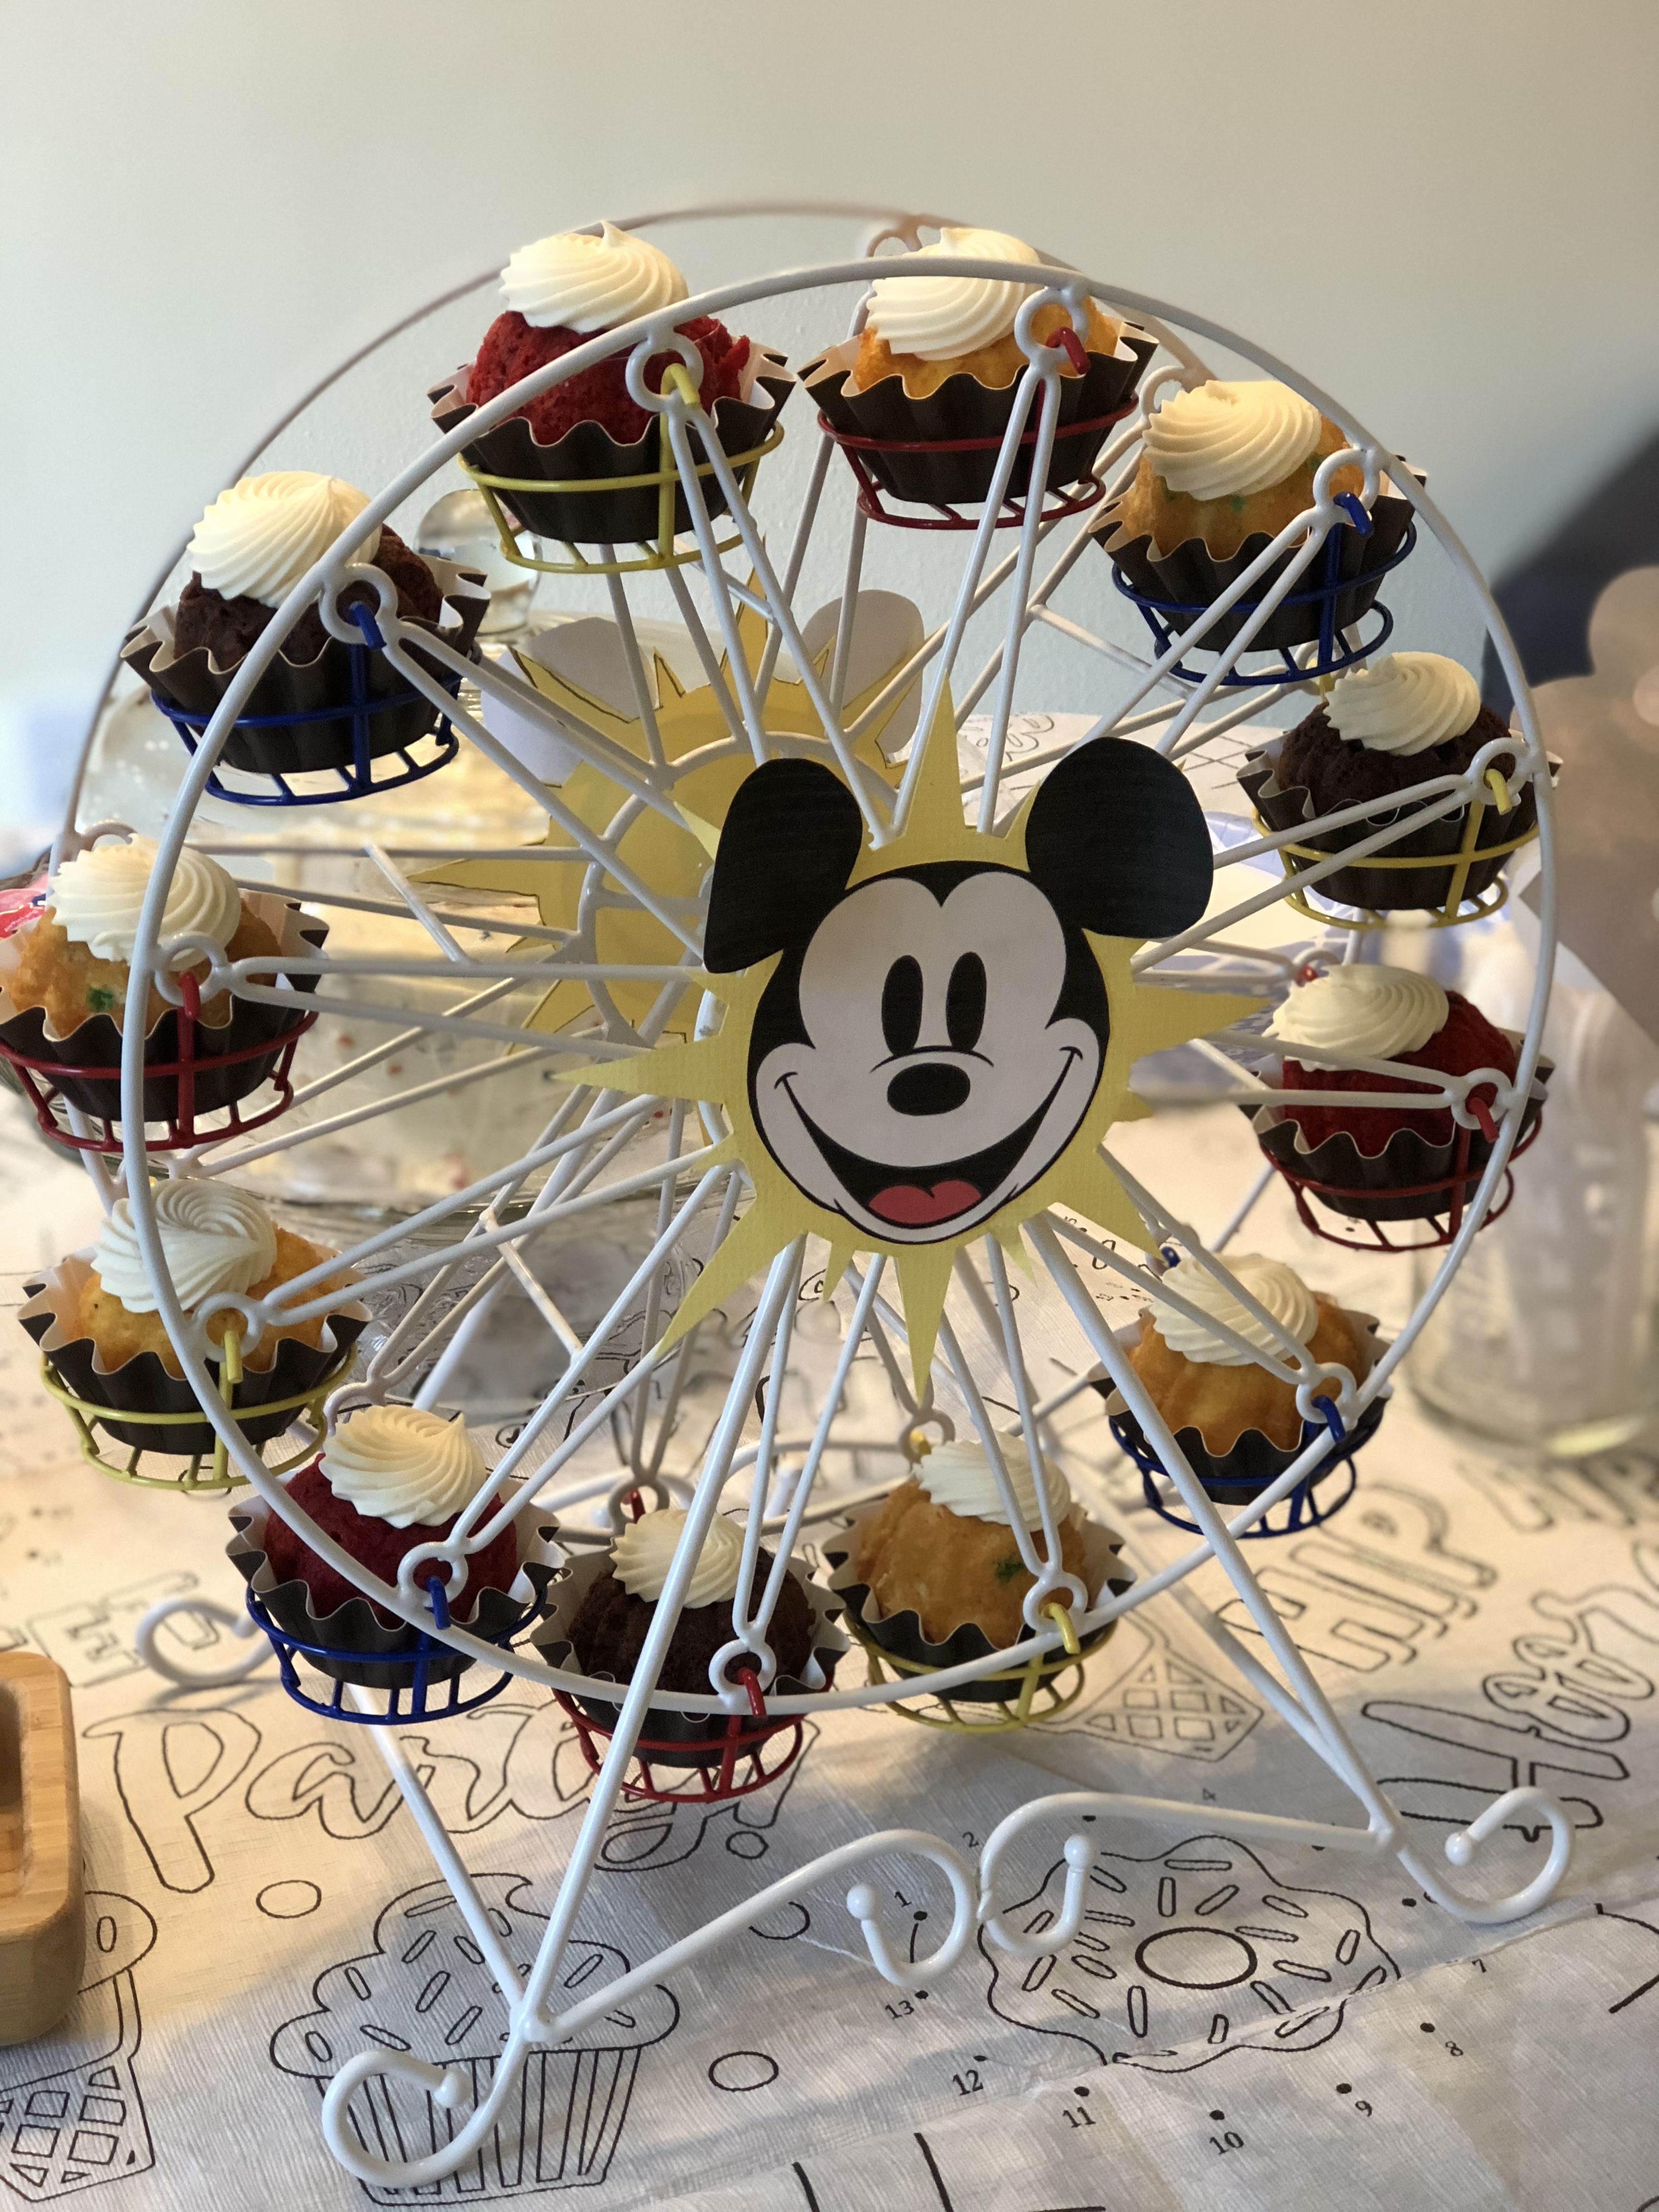 Ferris Wheel Cupcake Candle Holder Mickey Head Added To Look Like California Adventure Perfect For Any Ferris Wheel Cupcake Holder Cupcake Candle Craft Time